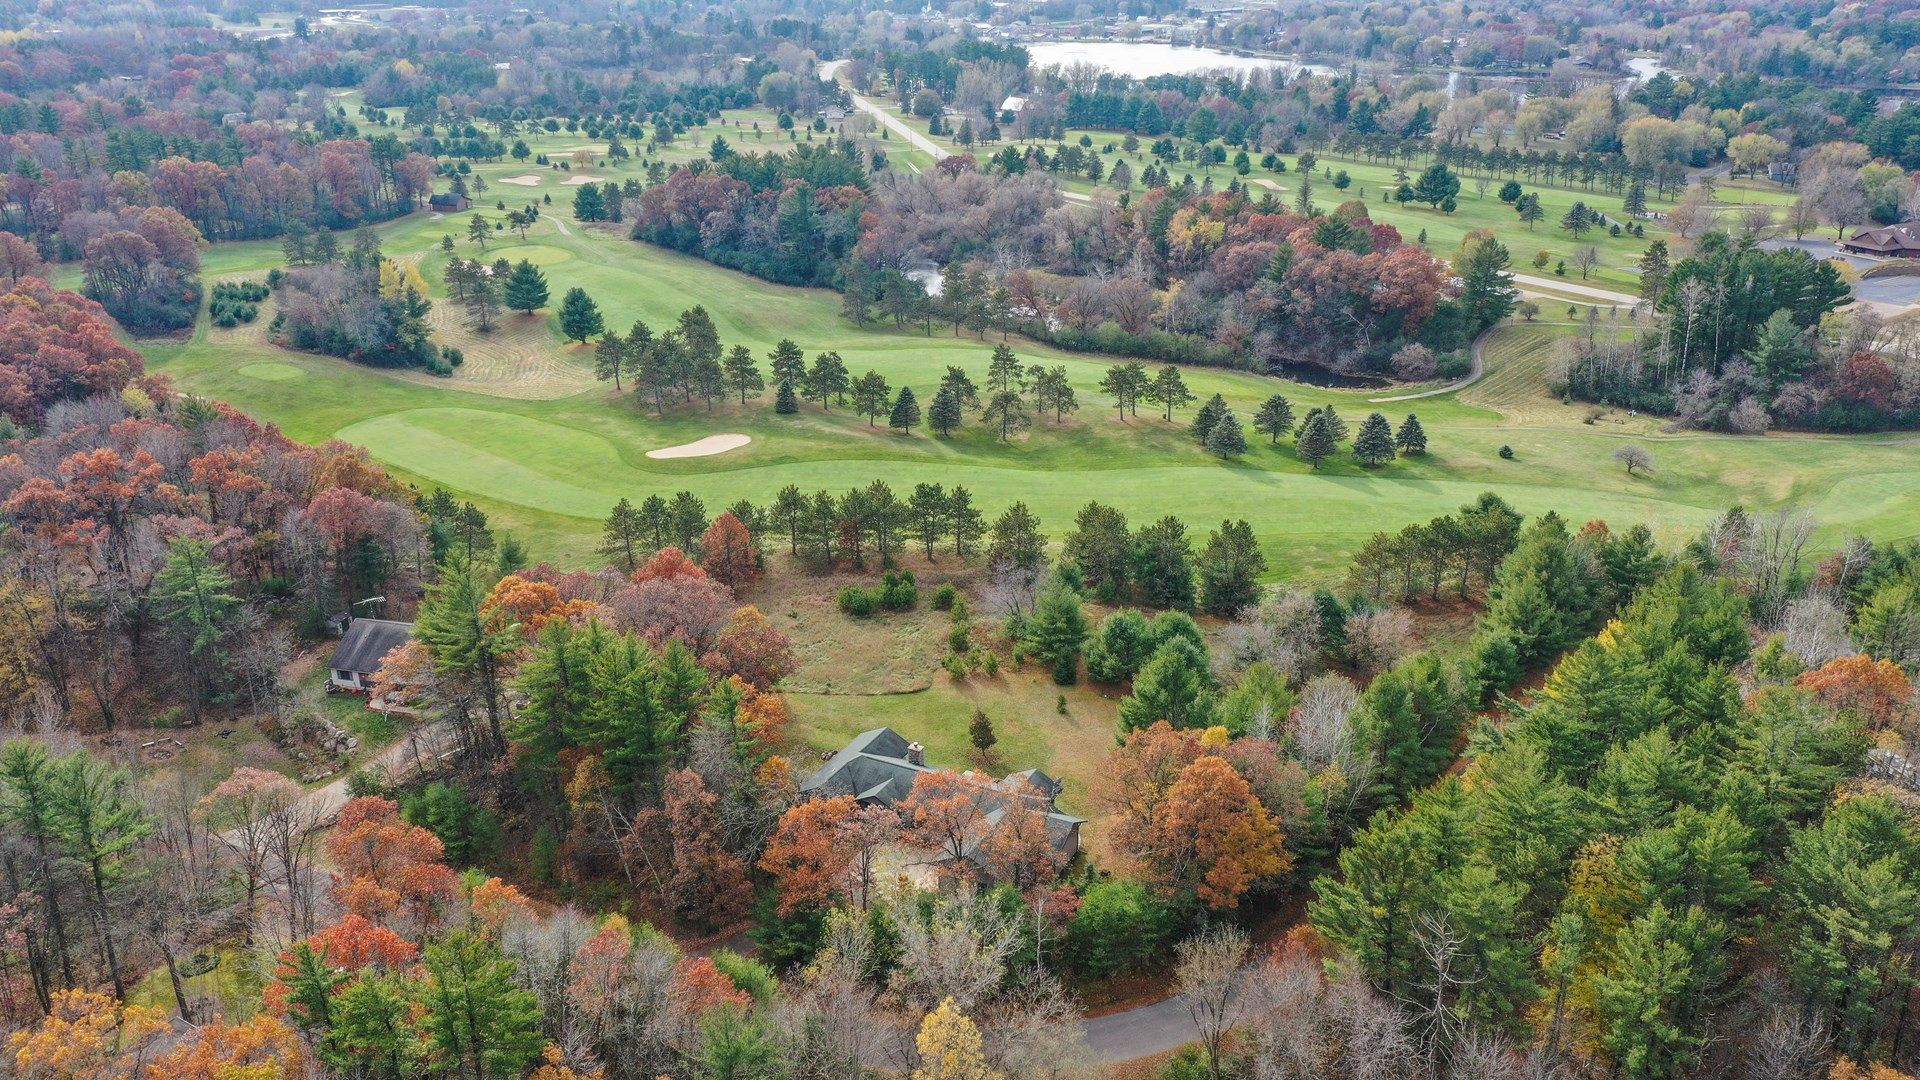 Golf Course Home For Sale in Iola, WI